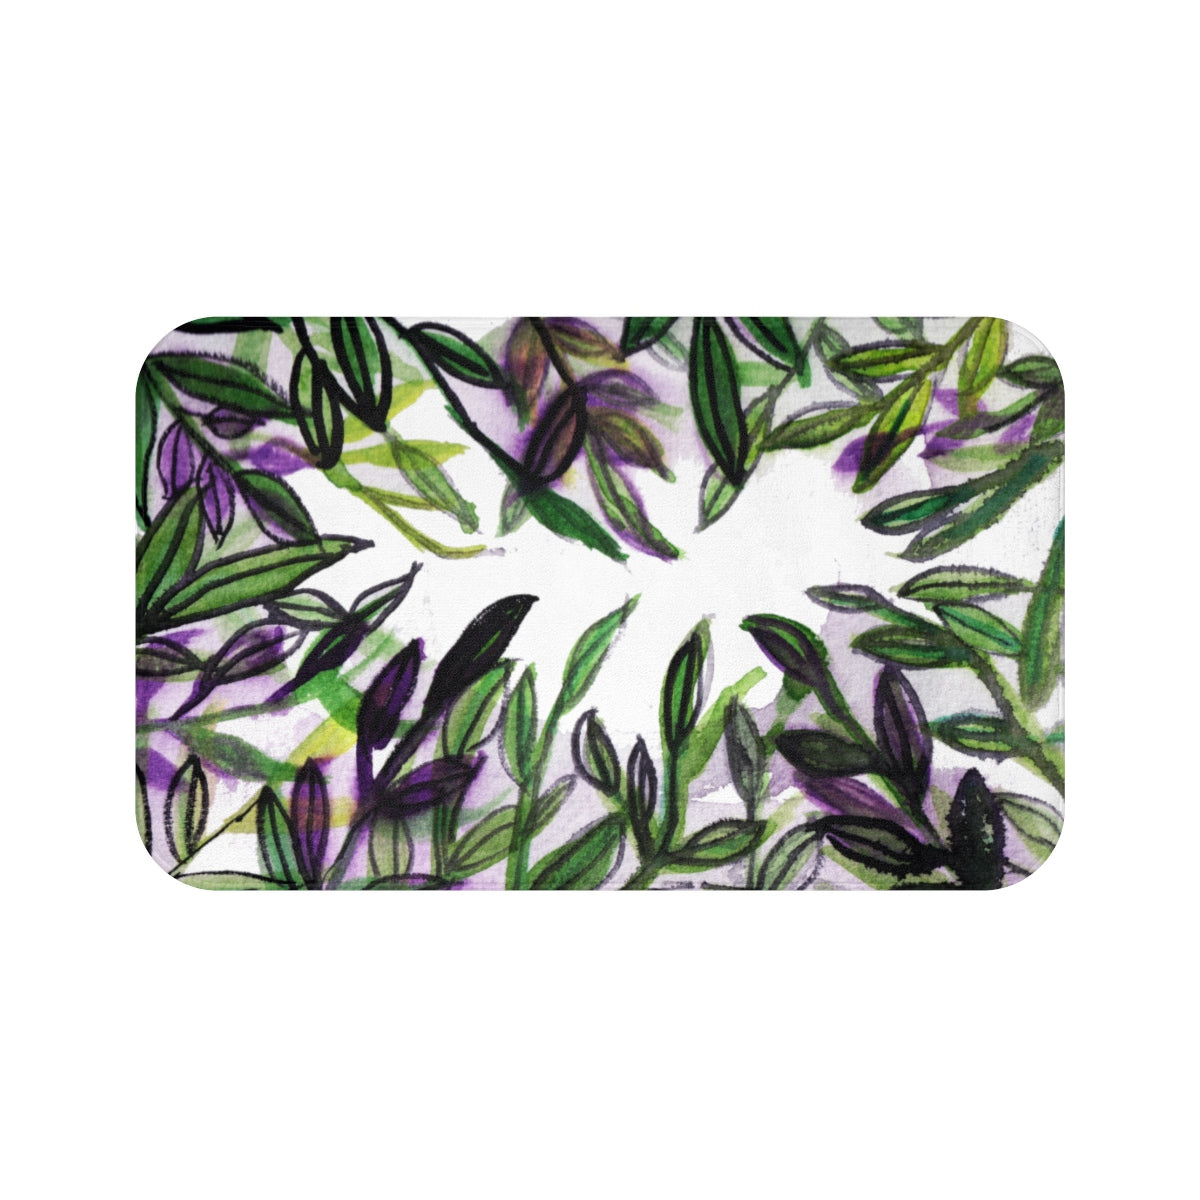 Real Fragrance Green Tropical Leaf Print Anti-Slip Microfiber Bath Mat -Printed in USA-Bath Mat-Large 34x21-Heidi Kimura Art LLC